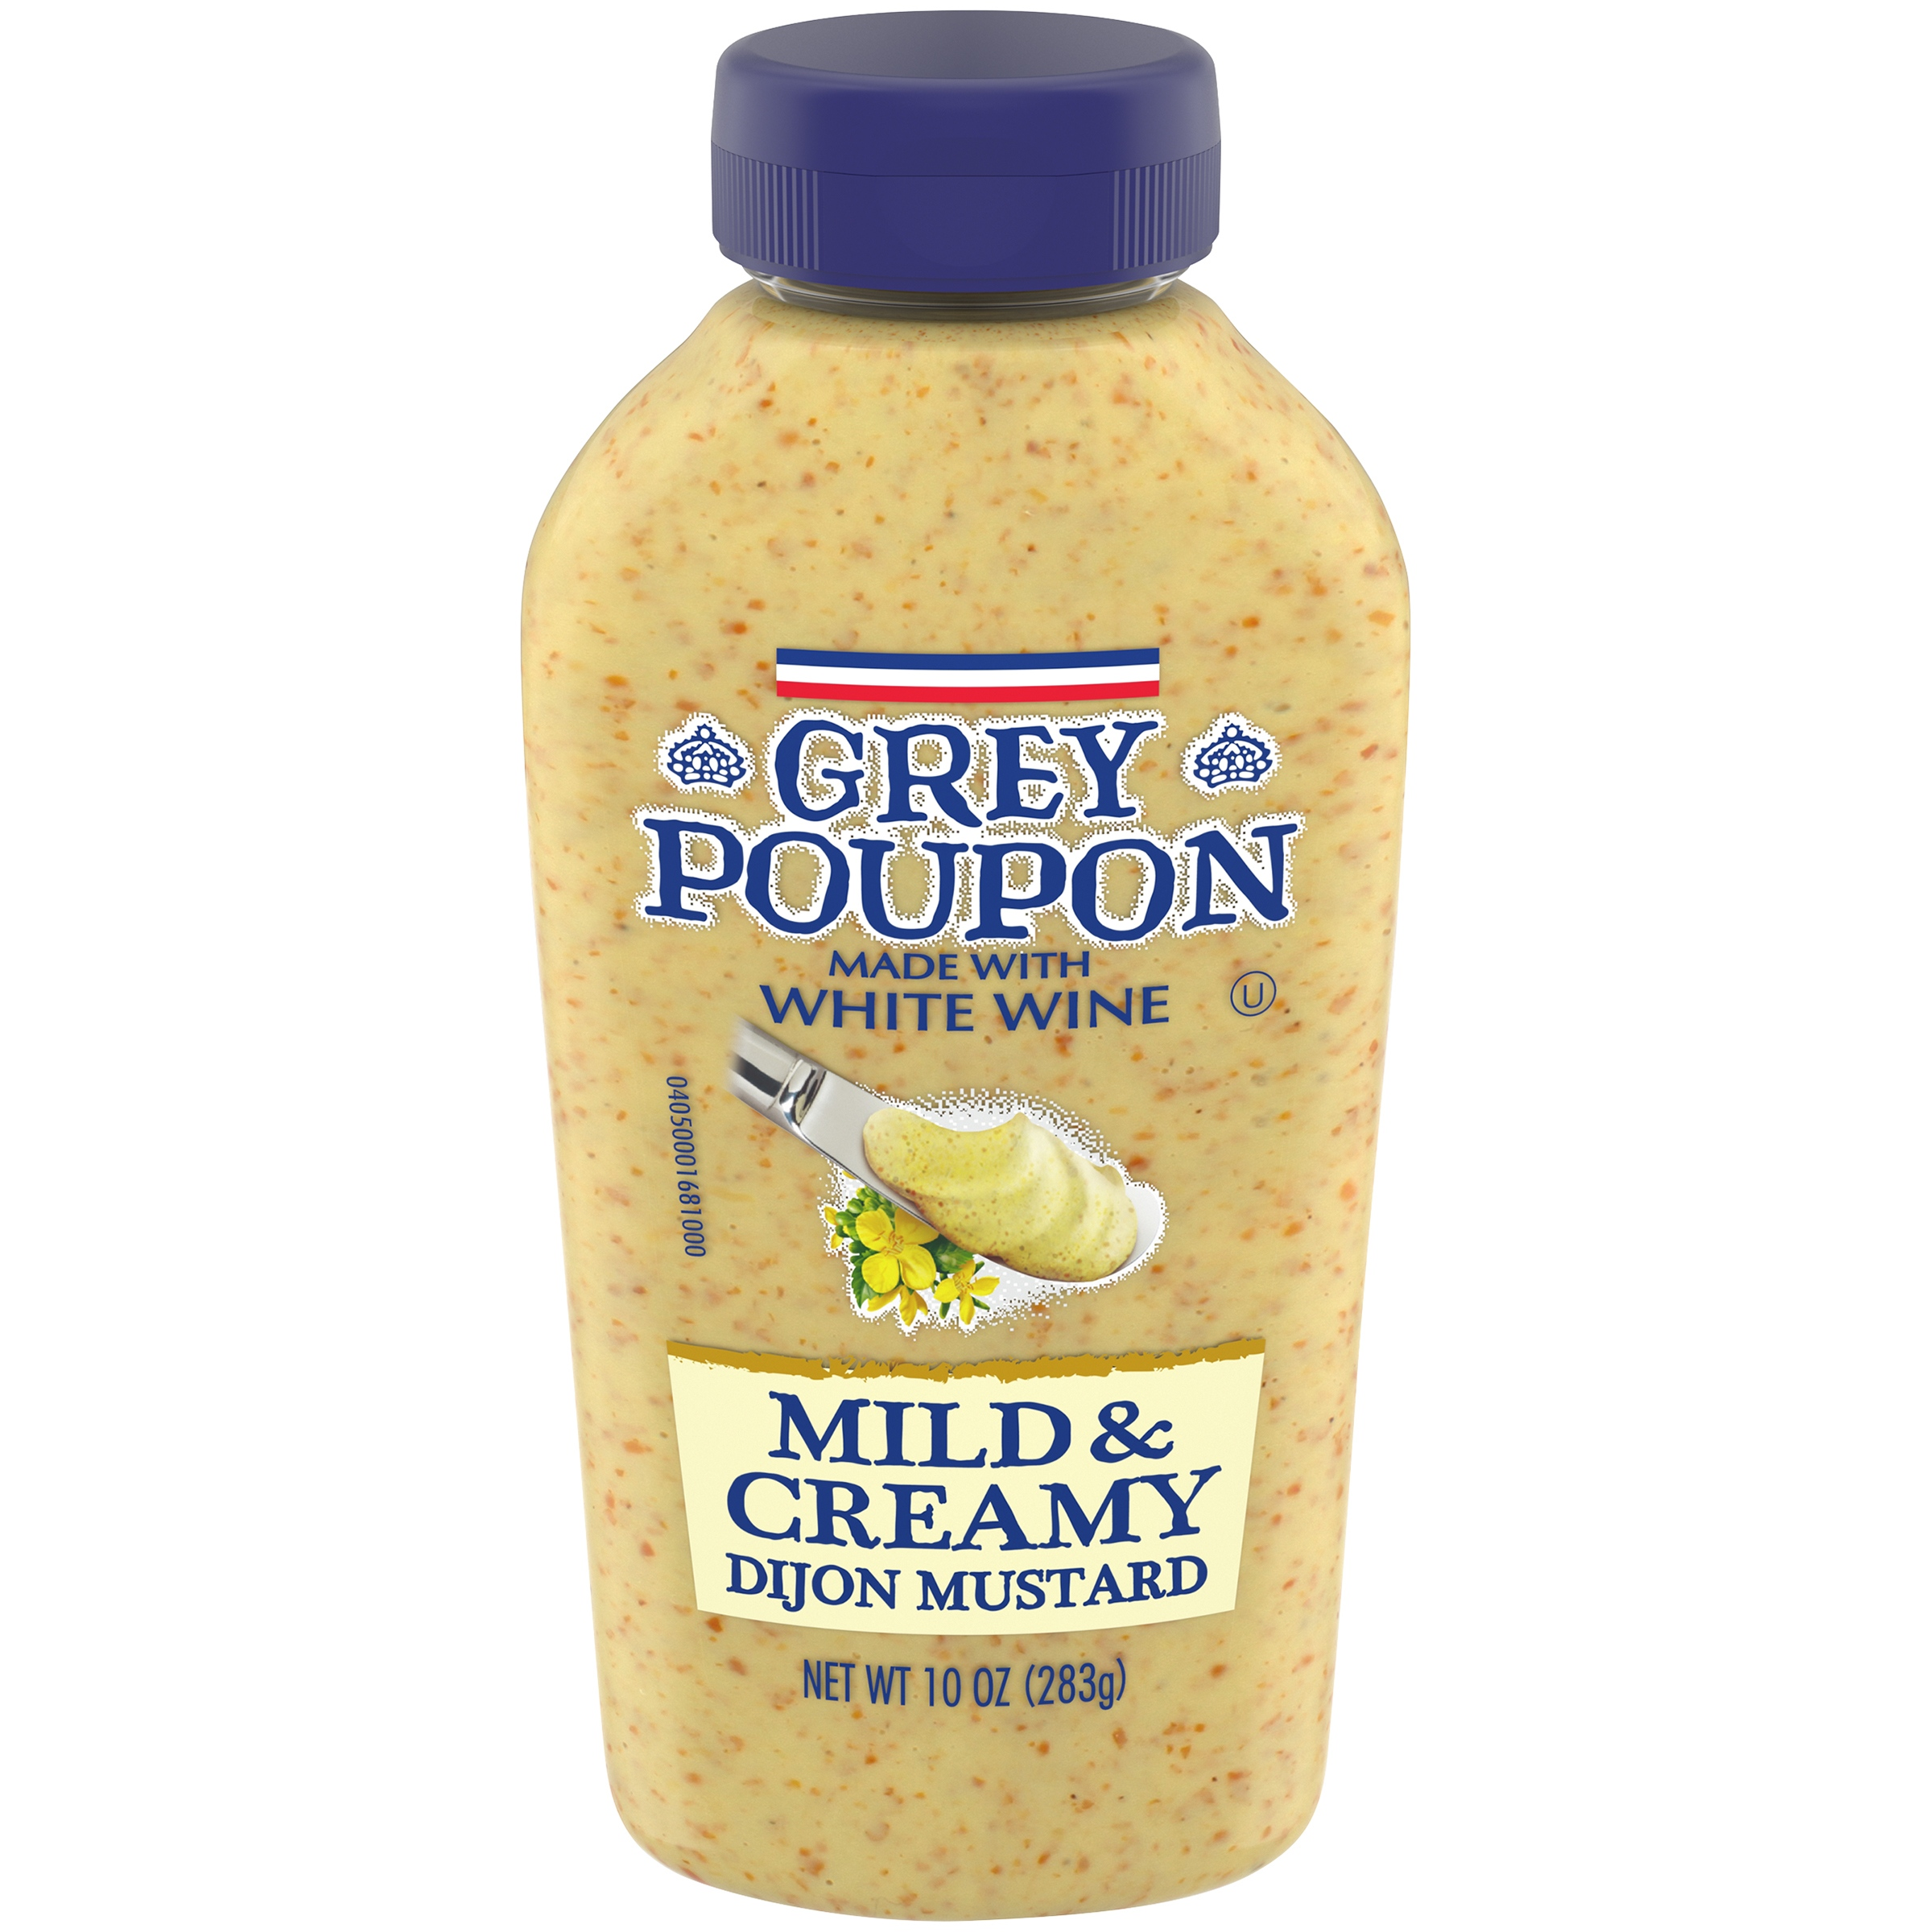 Grey Poupon Mild & Creamy Dijon Mustard 10 oz. Bottle - Walmart.com